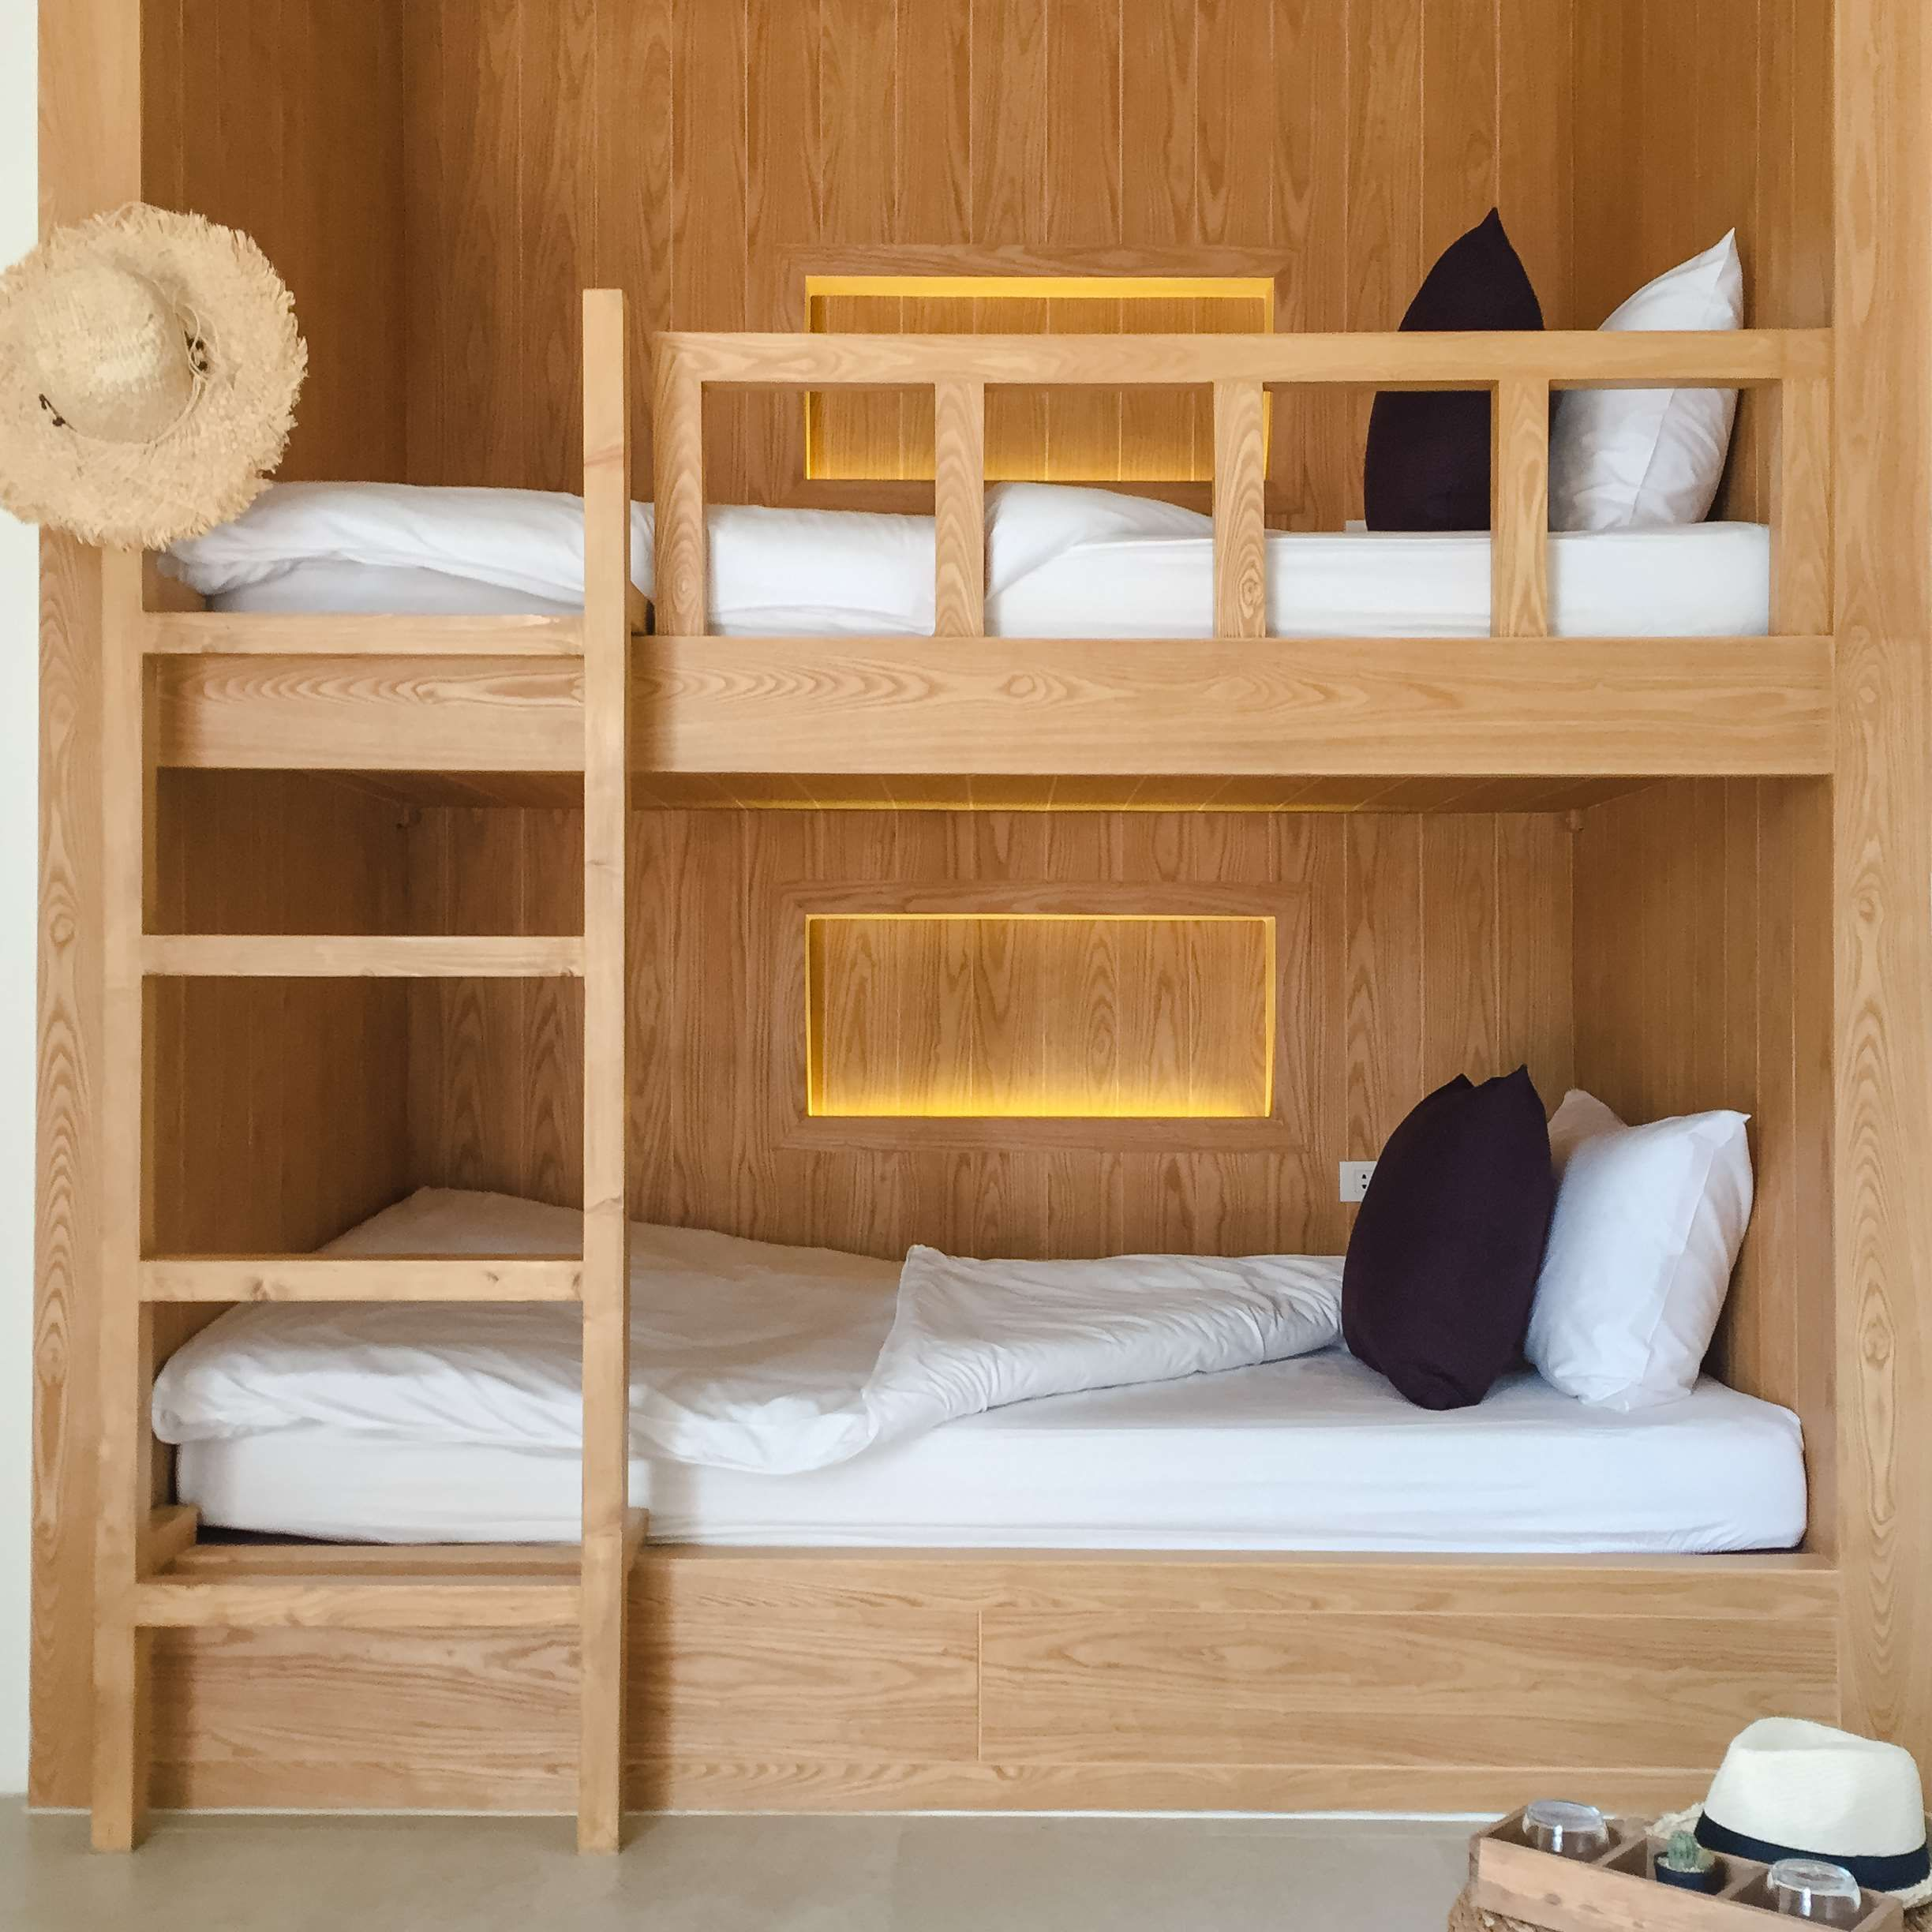 accommodation #architecture #background #bag #bed #bedroom #beds